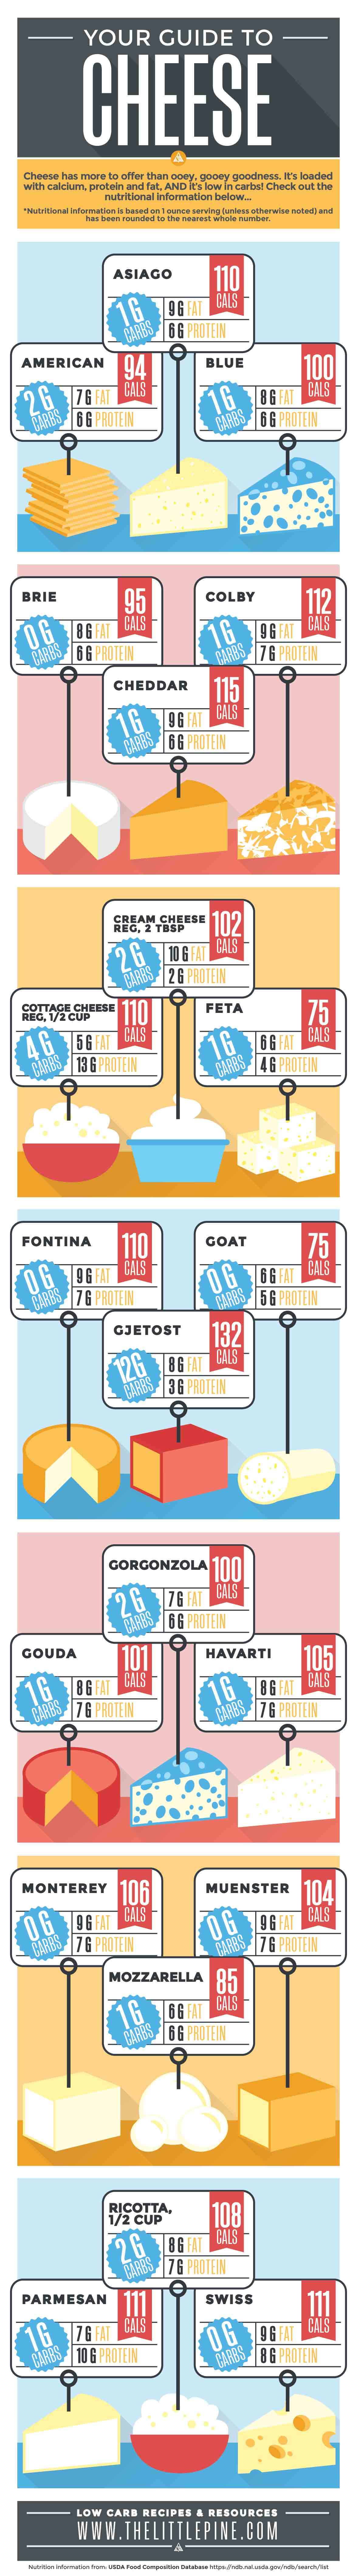 an illustration breakdown of the types of cheese and their nutrients